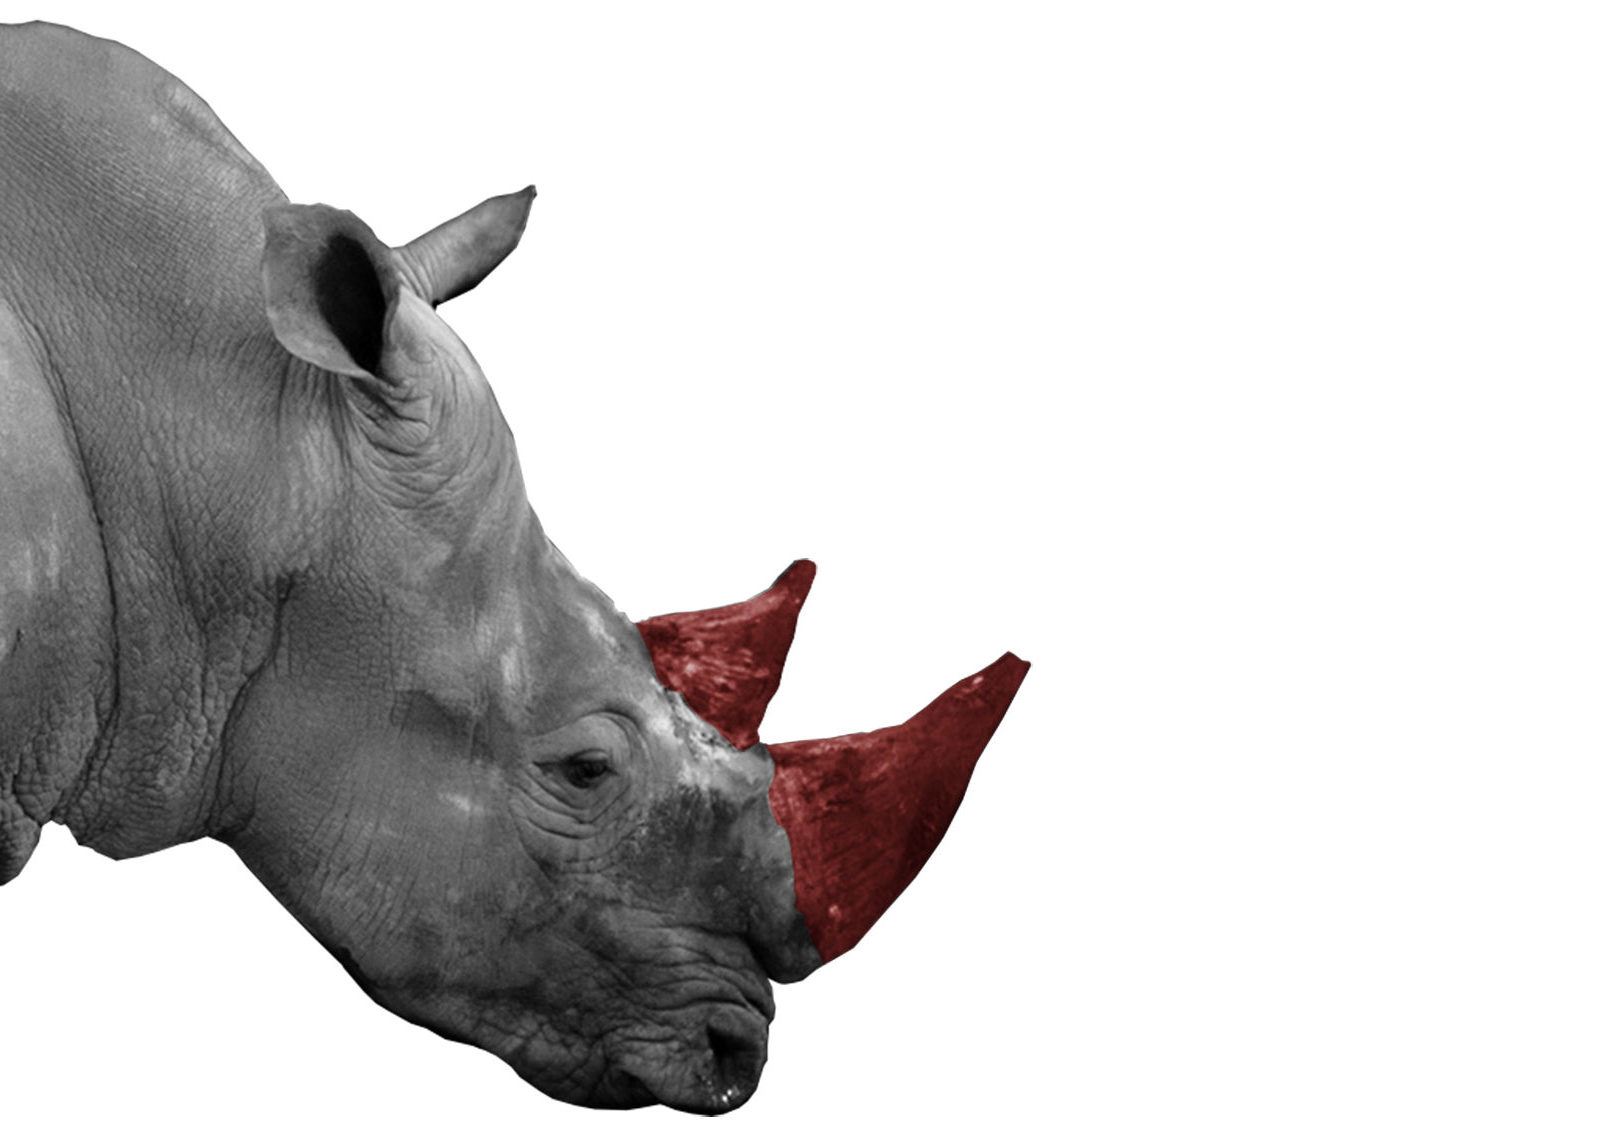 Can property rights and trade save Africa's rhino?